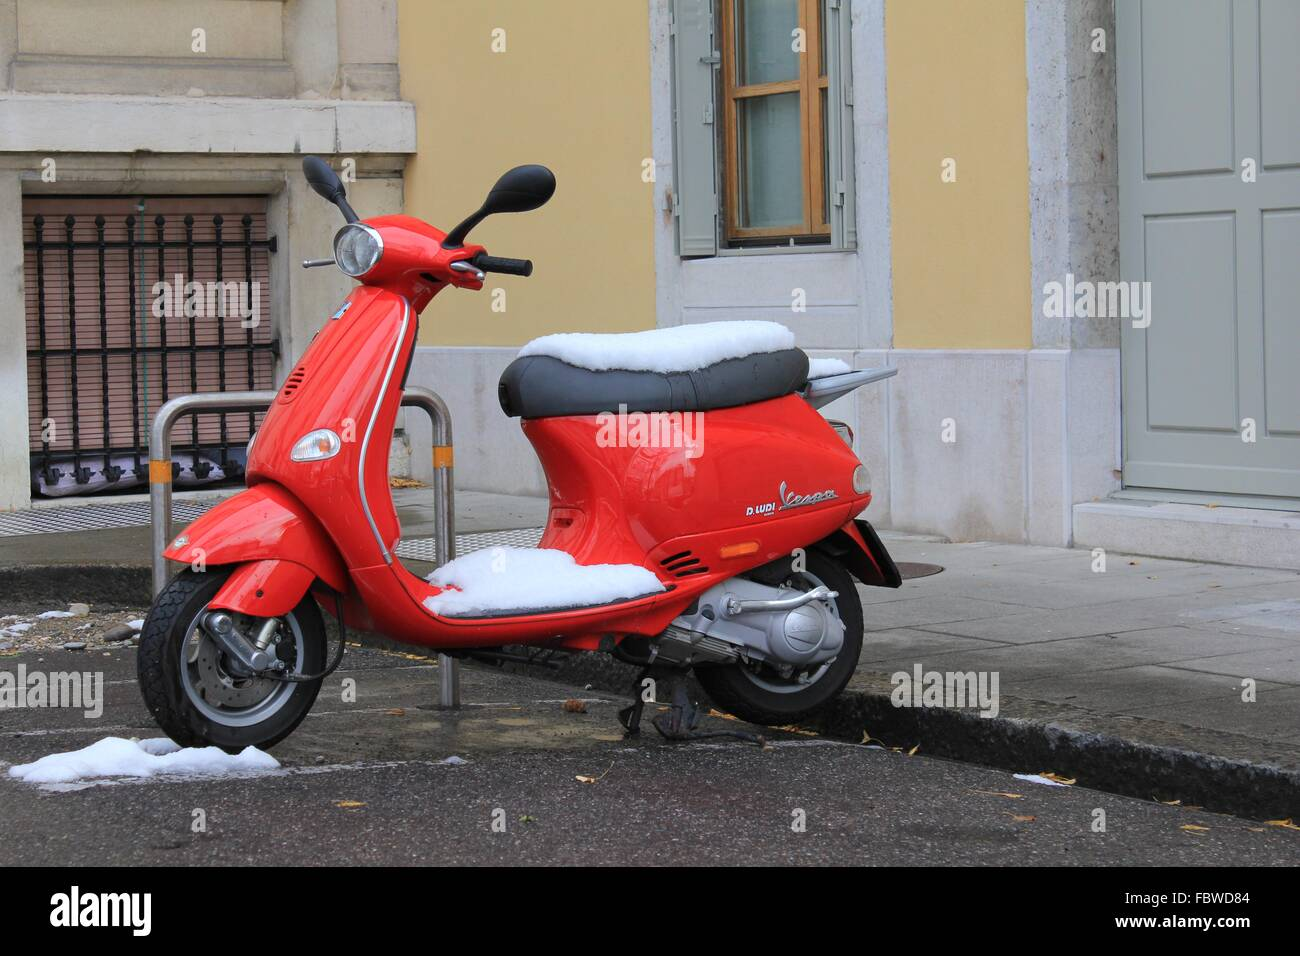 scooter - Stock Image